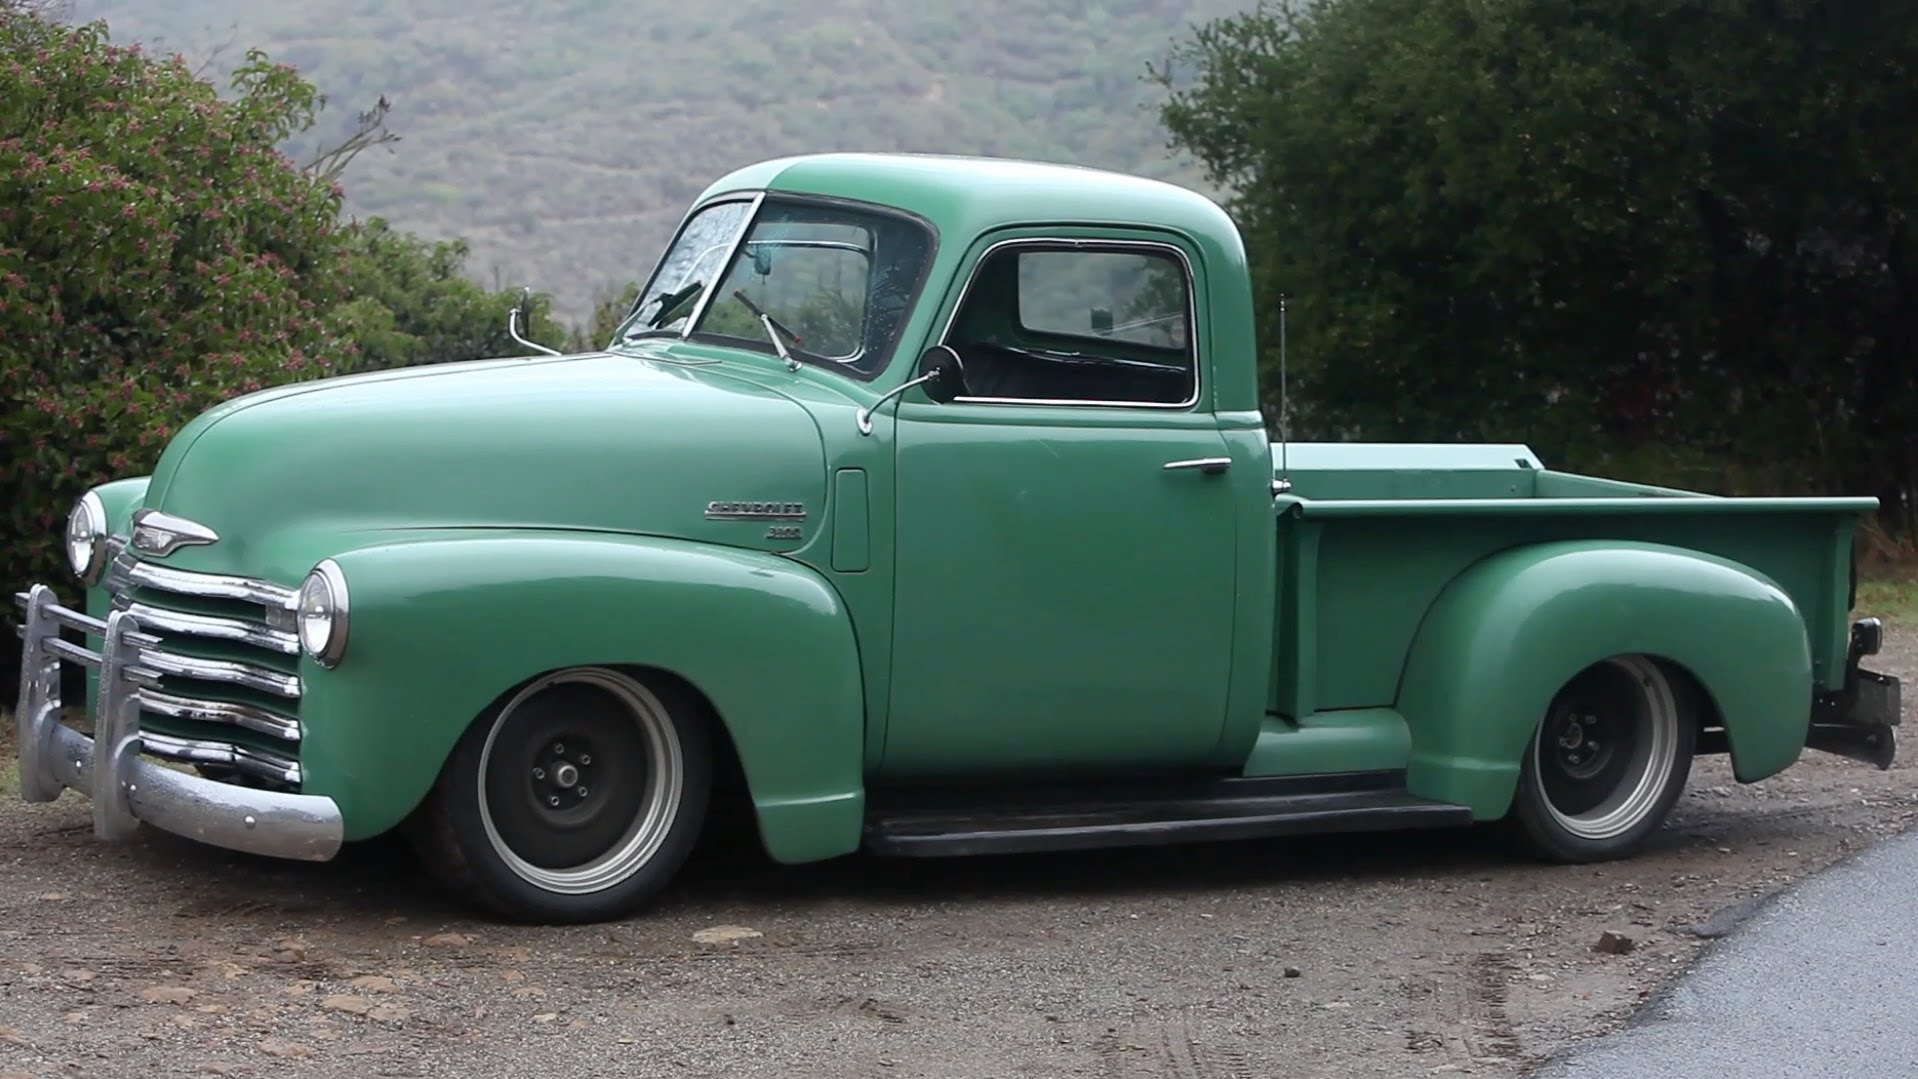 Check Out This Striking 1950 Chevrolet Muscle Truck!